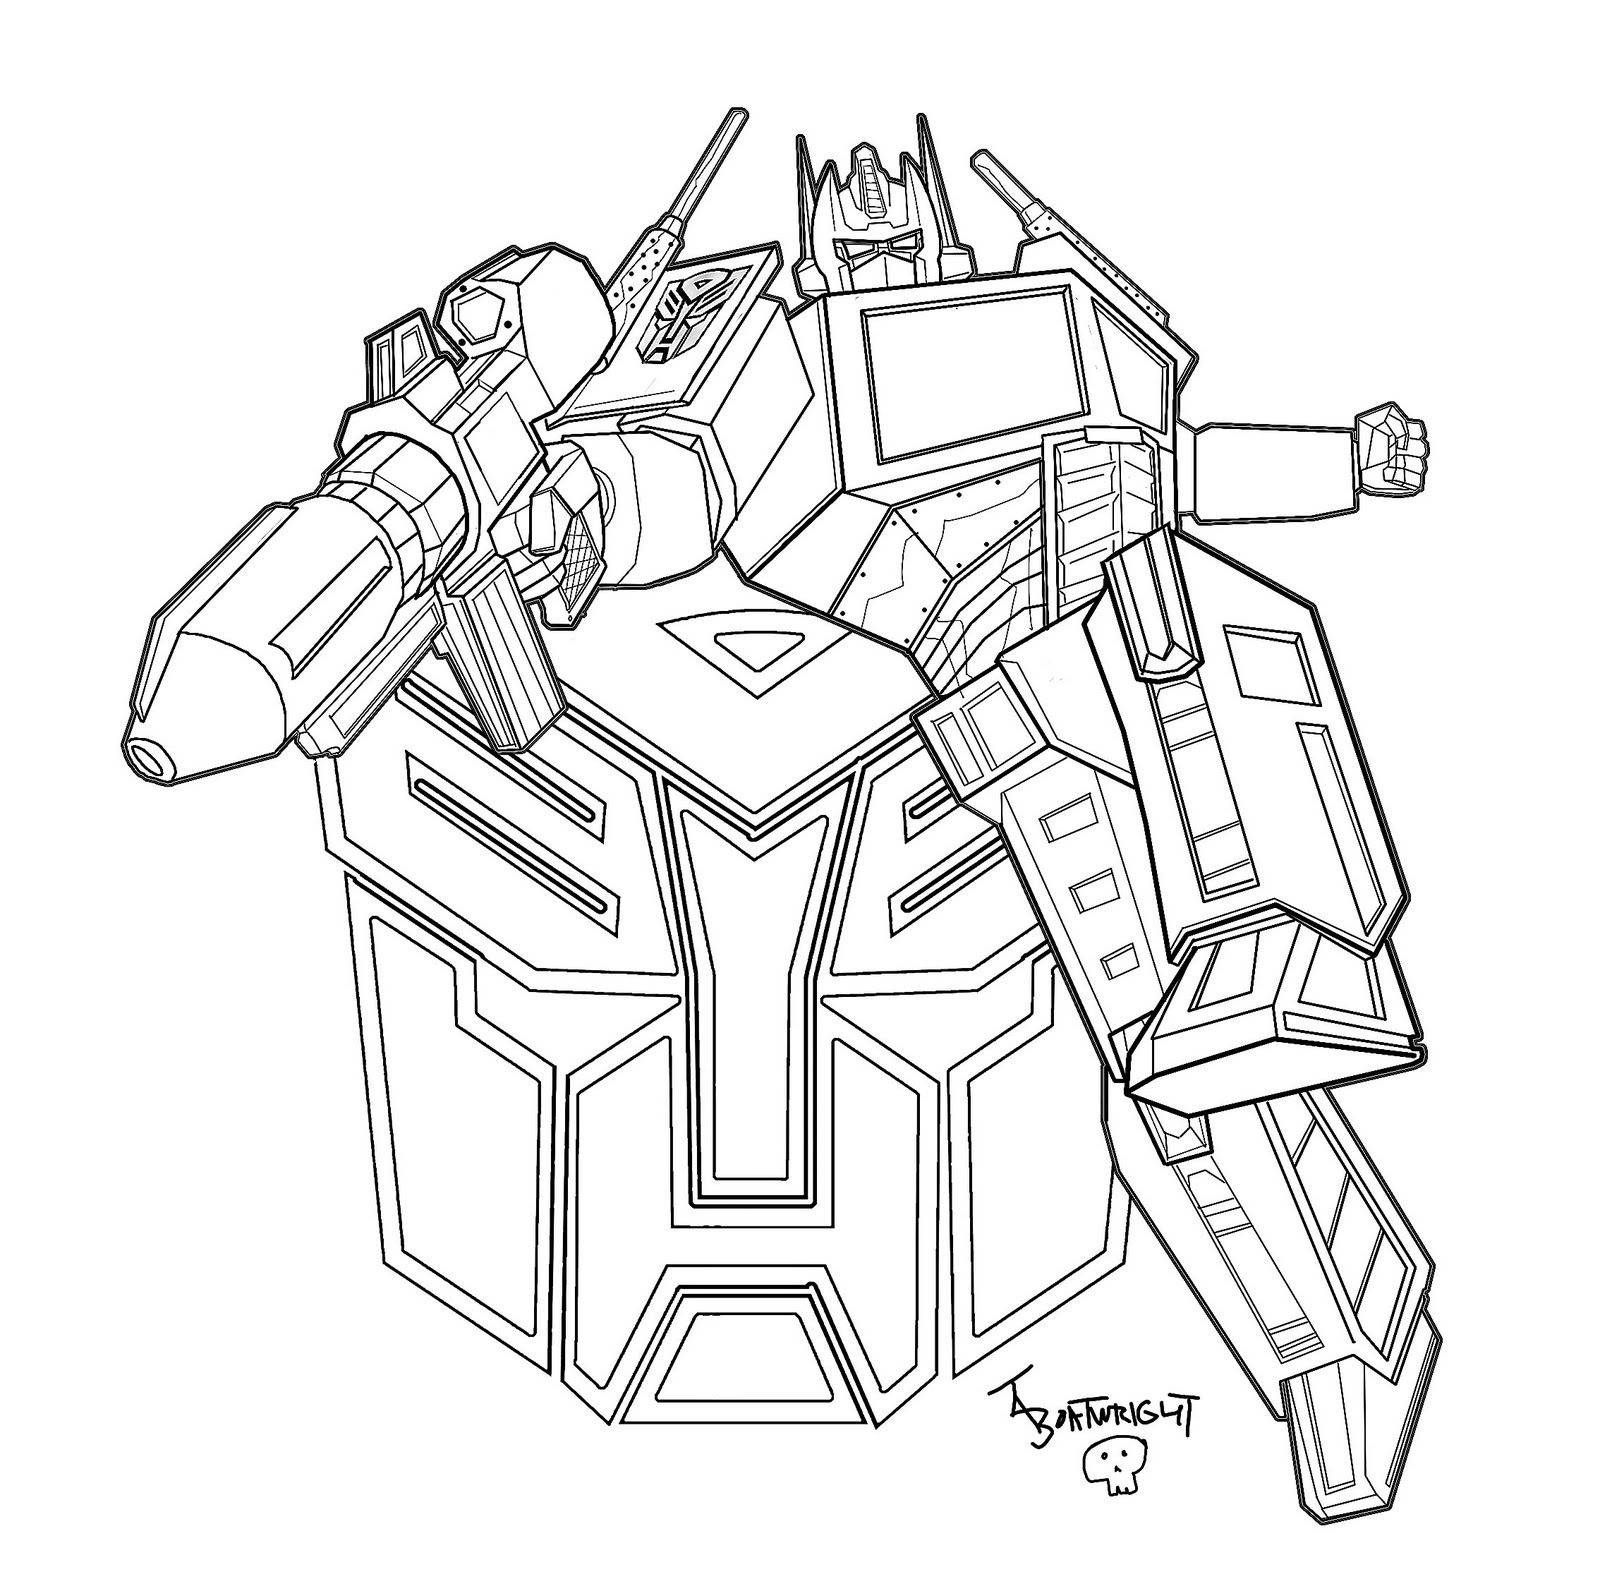 Cool Transformers Coloring Pages For Kids Printable | Coloring Pages - Transformers 4 Coloring Pages Free Printable